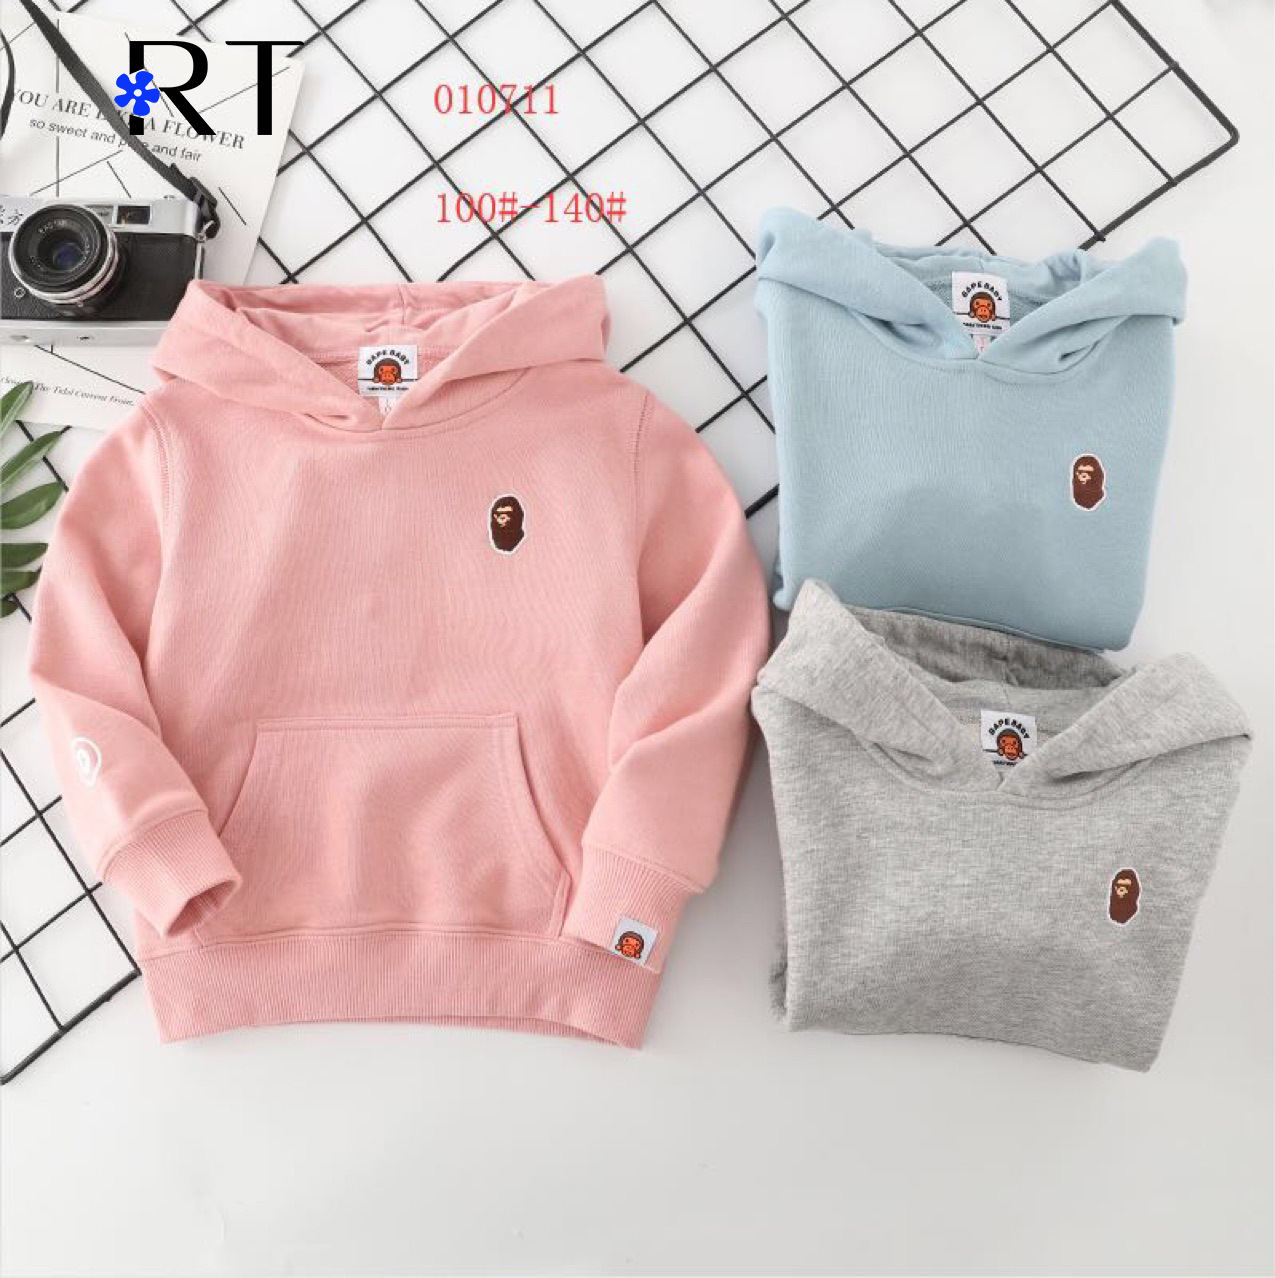 Unisex Kids 100%Cotton Hoodie Sweatshirt Baby boys' Plain Blank Hoodies Kids Sweatshirts Children Hoodies for Boys and Girls